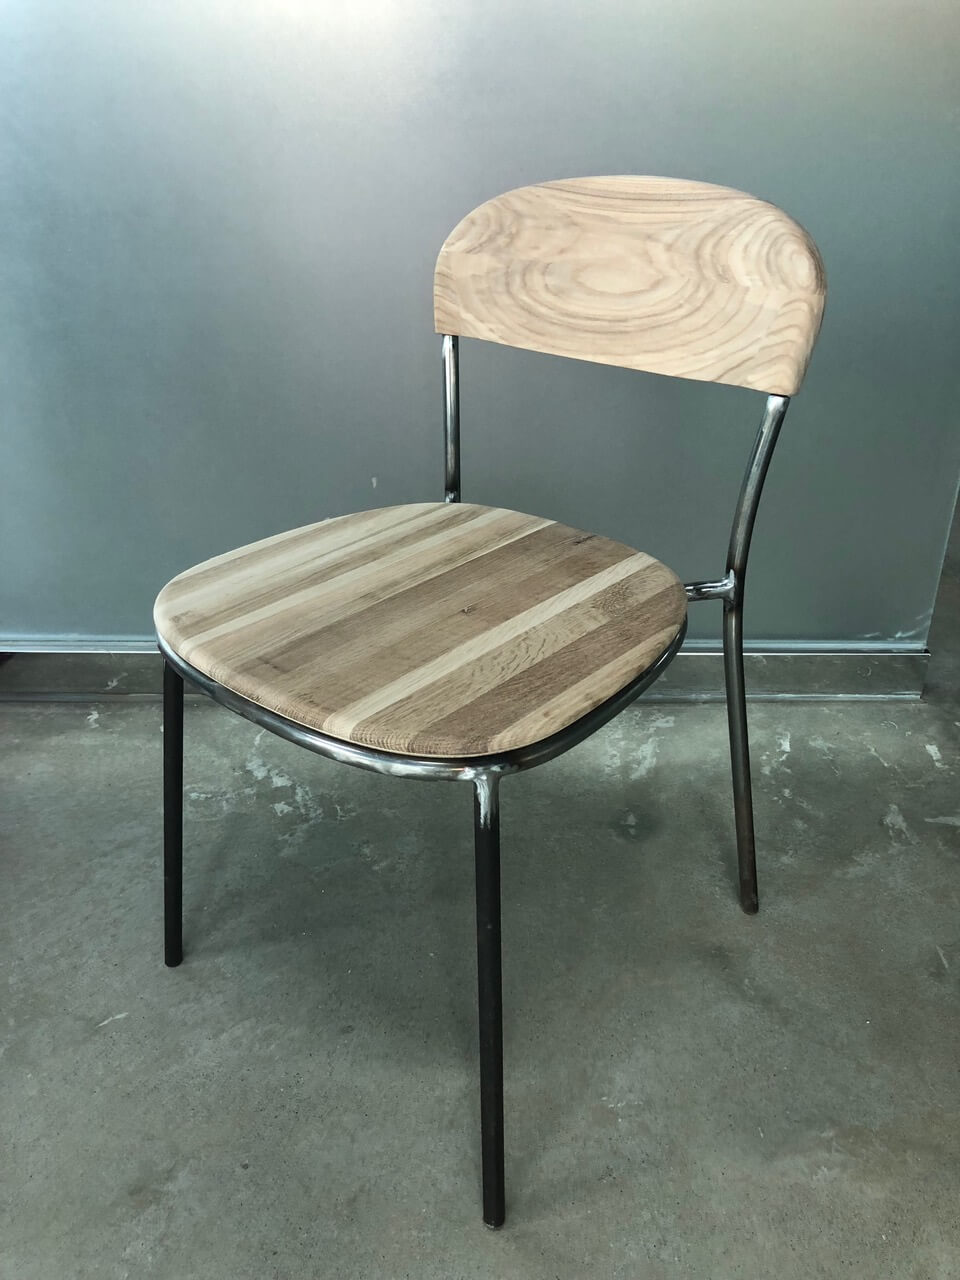 Bistro Chair - 1859 - Metal and Wood - Shaped Cafe Chair - Hayche Furniture - HAYCHE.com